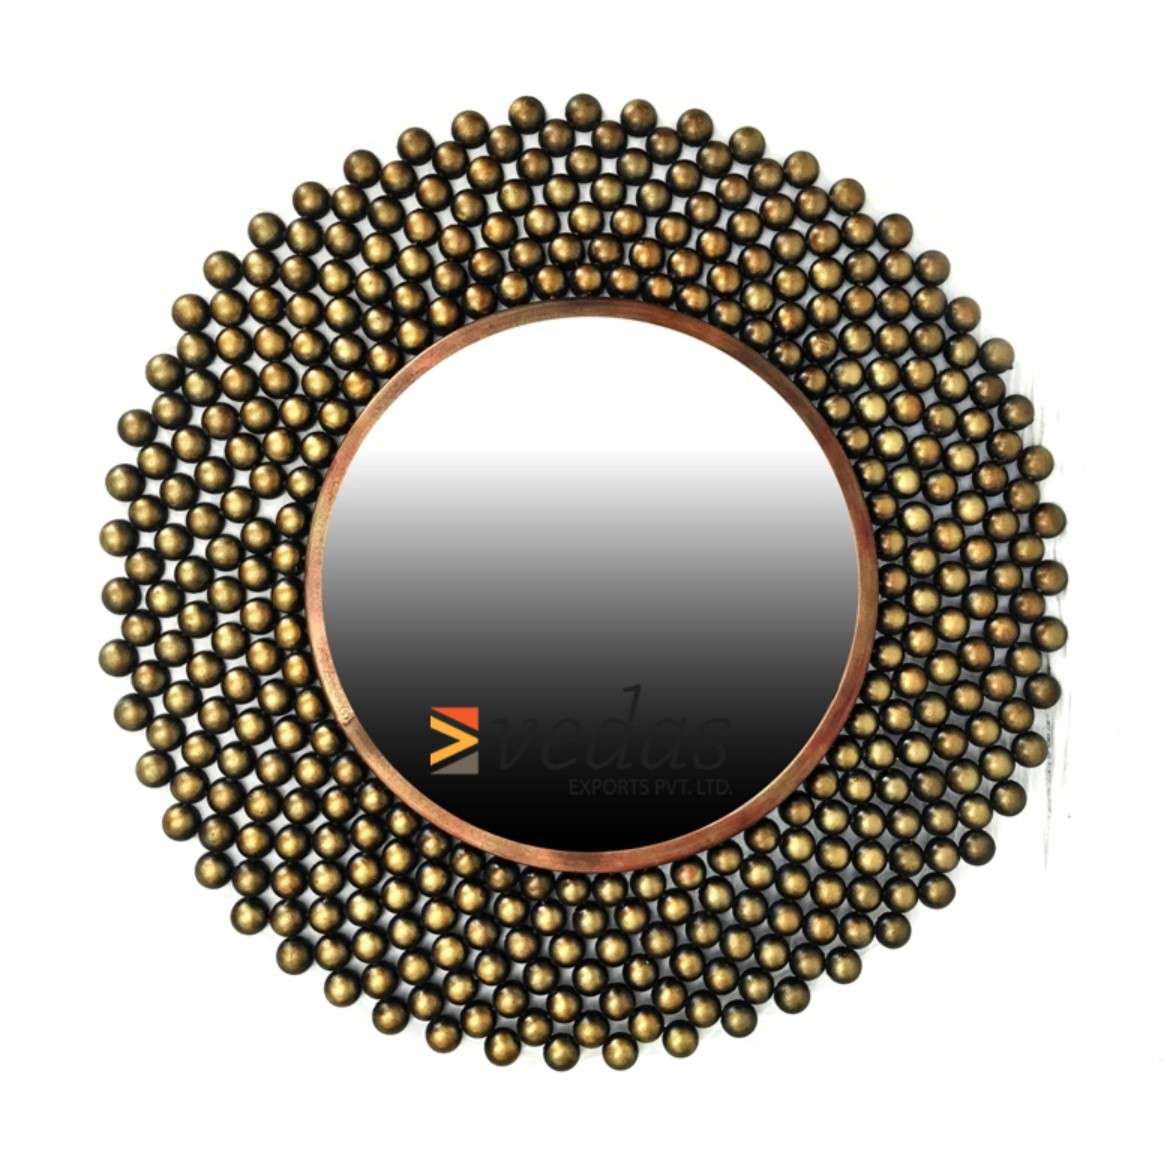 W-PARUL MIRROR Iron Large Wall Accents in Mettalic Brown Colour by Royce